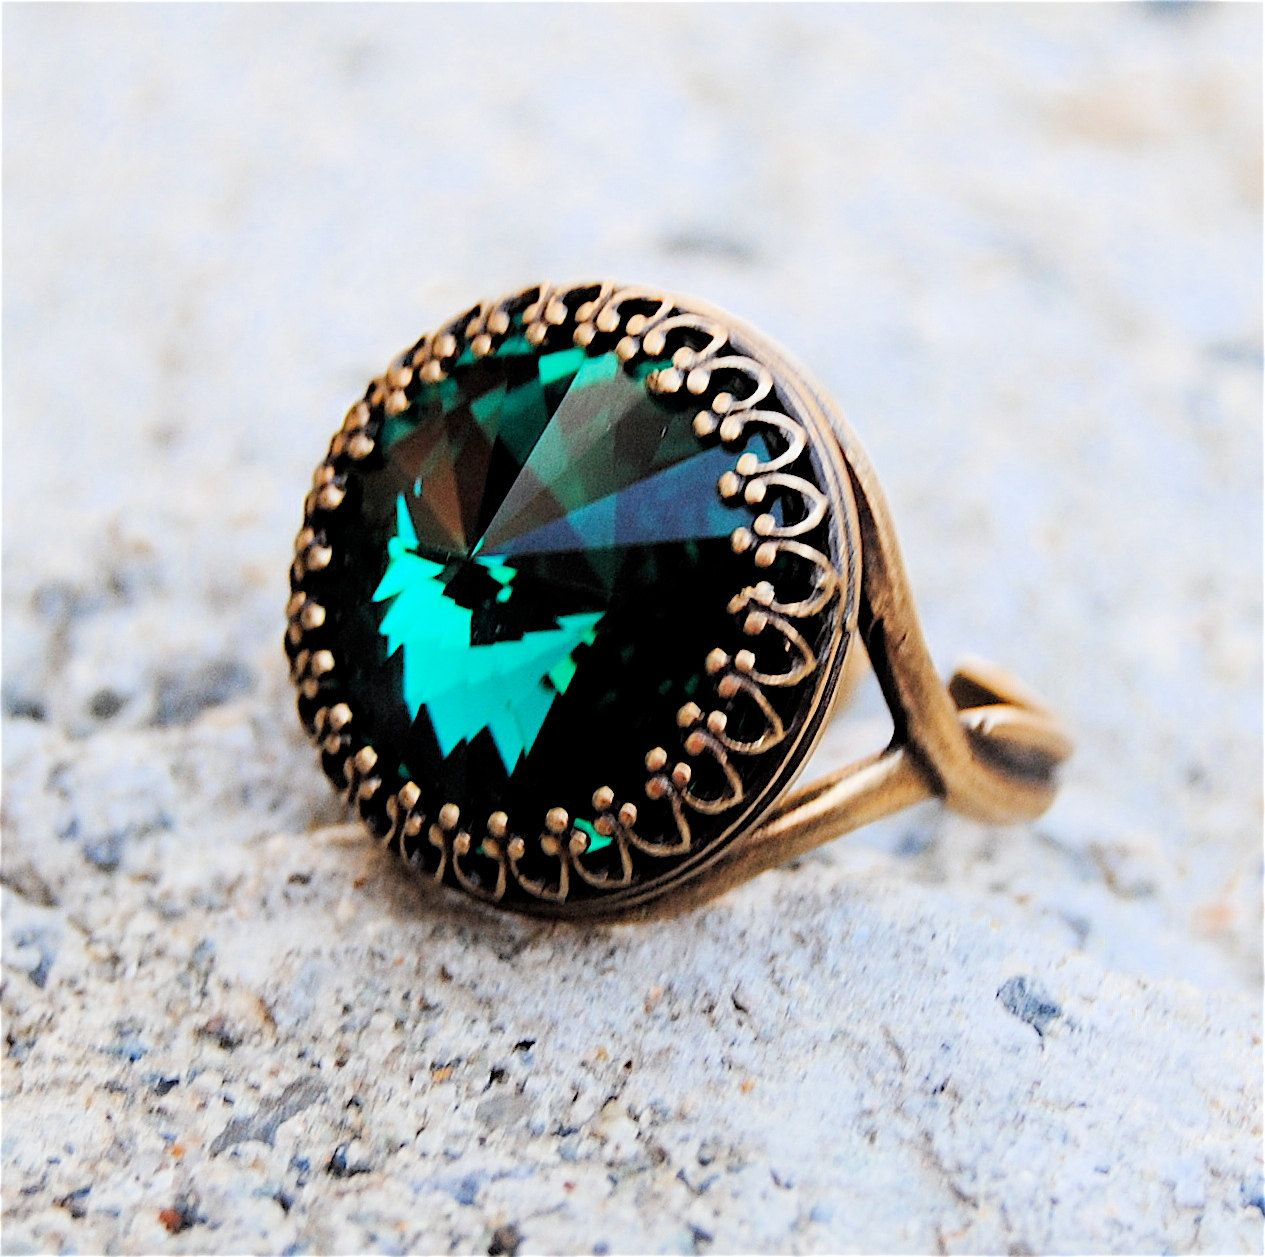 Swarovski Crystal Ring - Crown Victorian - Emerald Green and Antiqued Brass